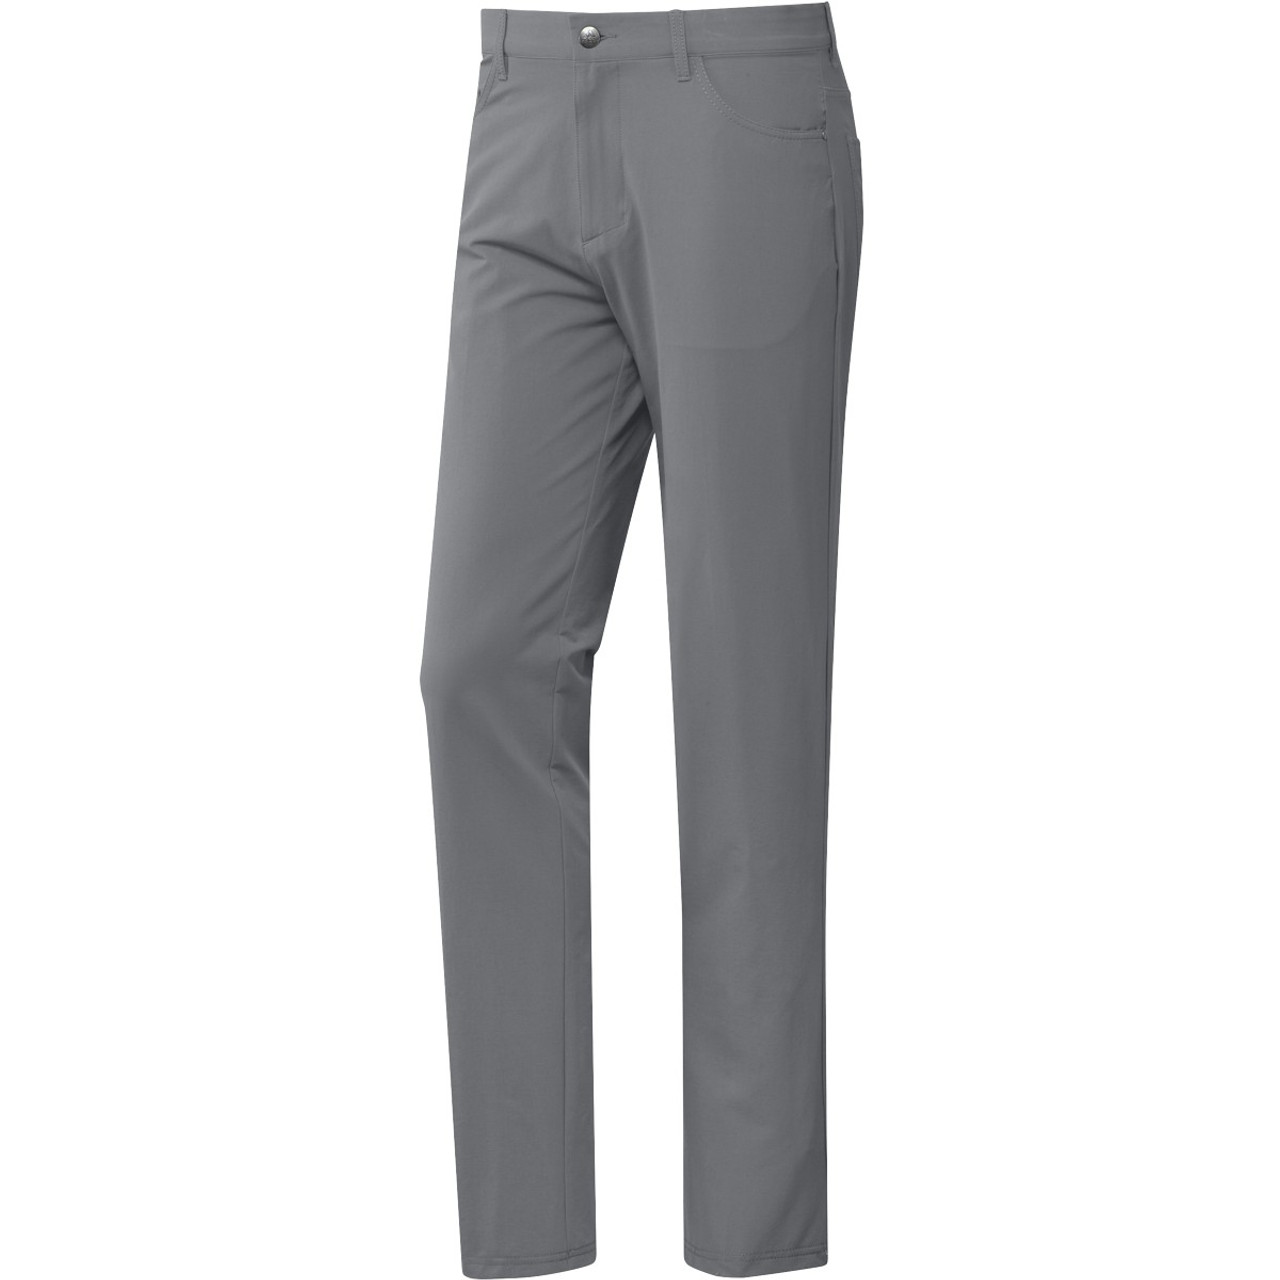 Adidas GO-TO Five Pocket Pants- Grey Three